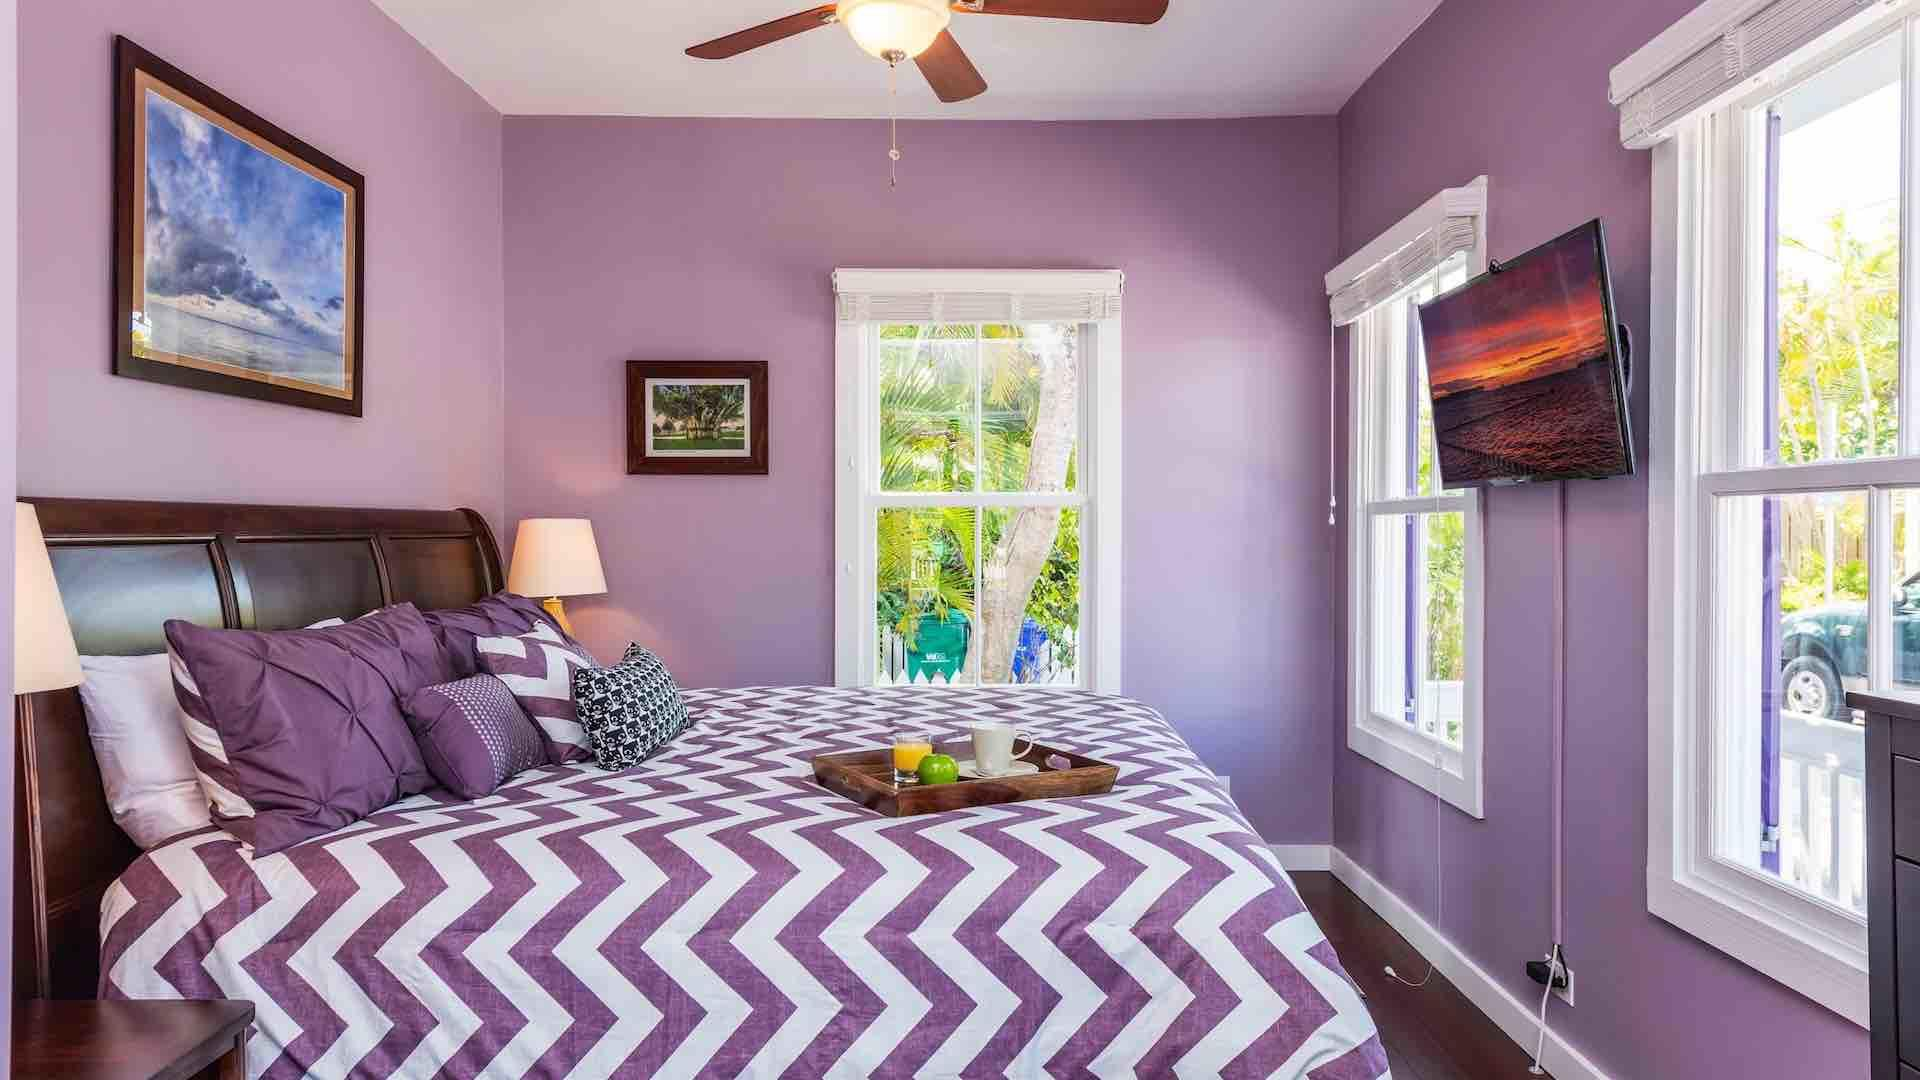 The master bedroom has an overhead fan and large flat screen TV...